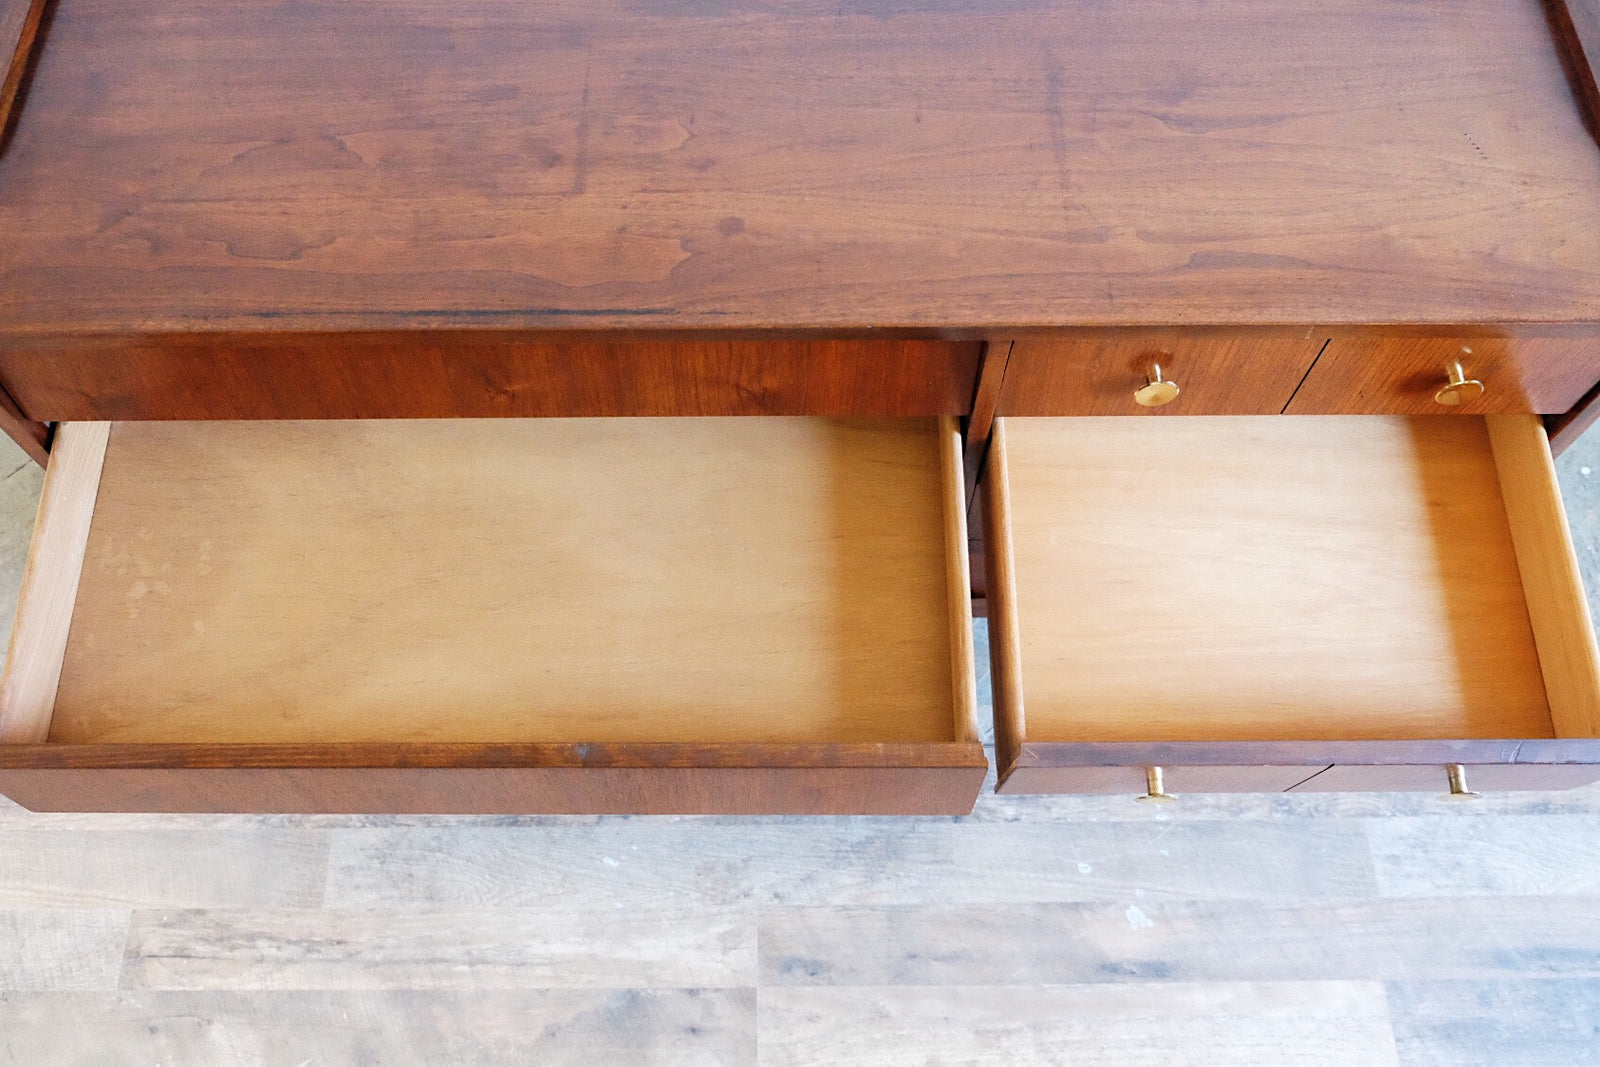 Louvered Asymmetrical Mid Century Modern Sideboard Circular Brass Vintage Surplus Handles Seven Drawers